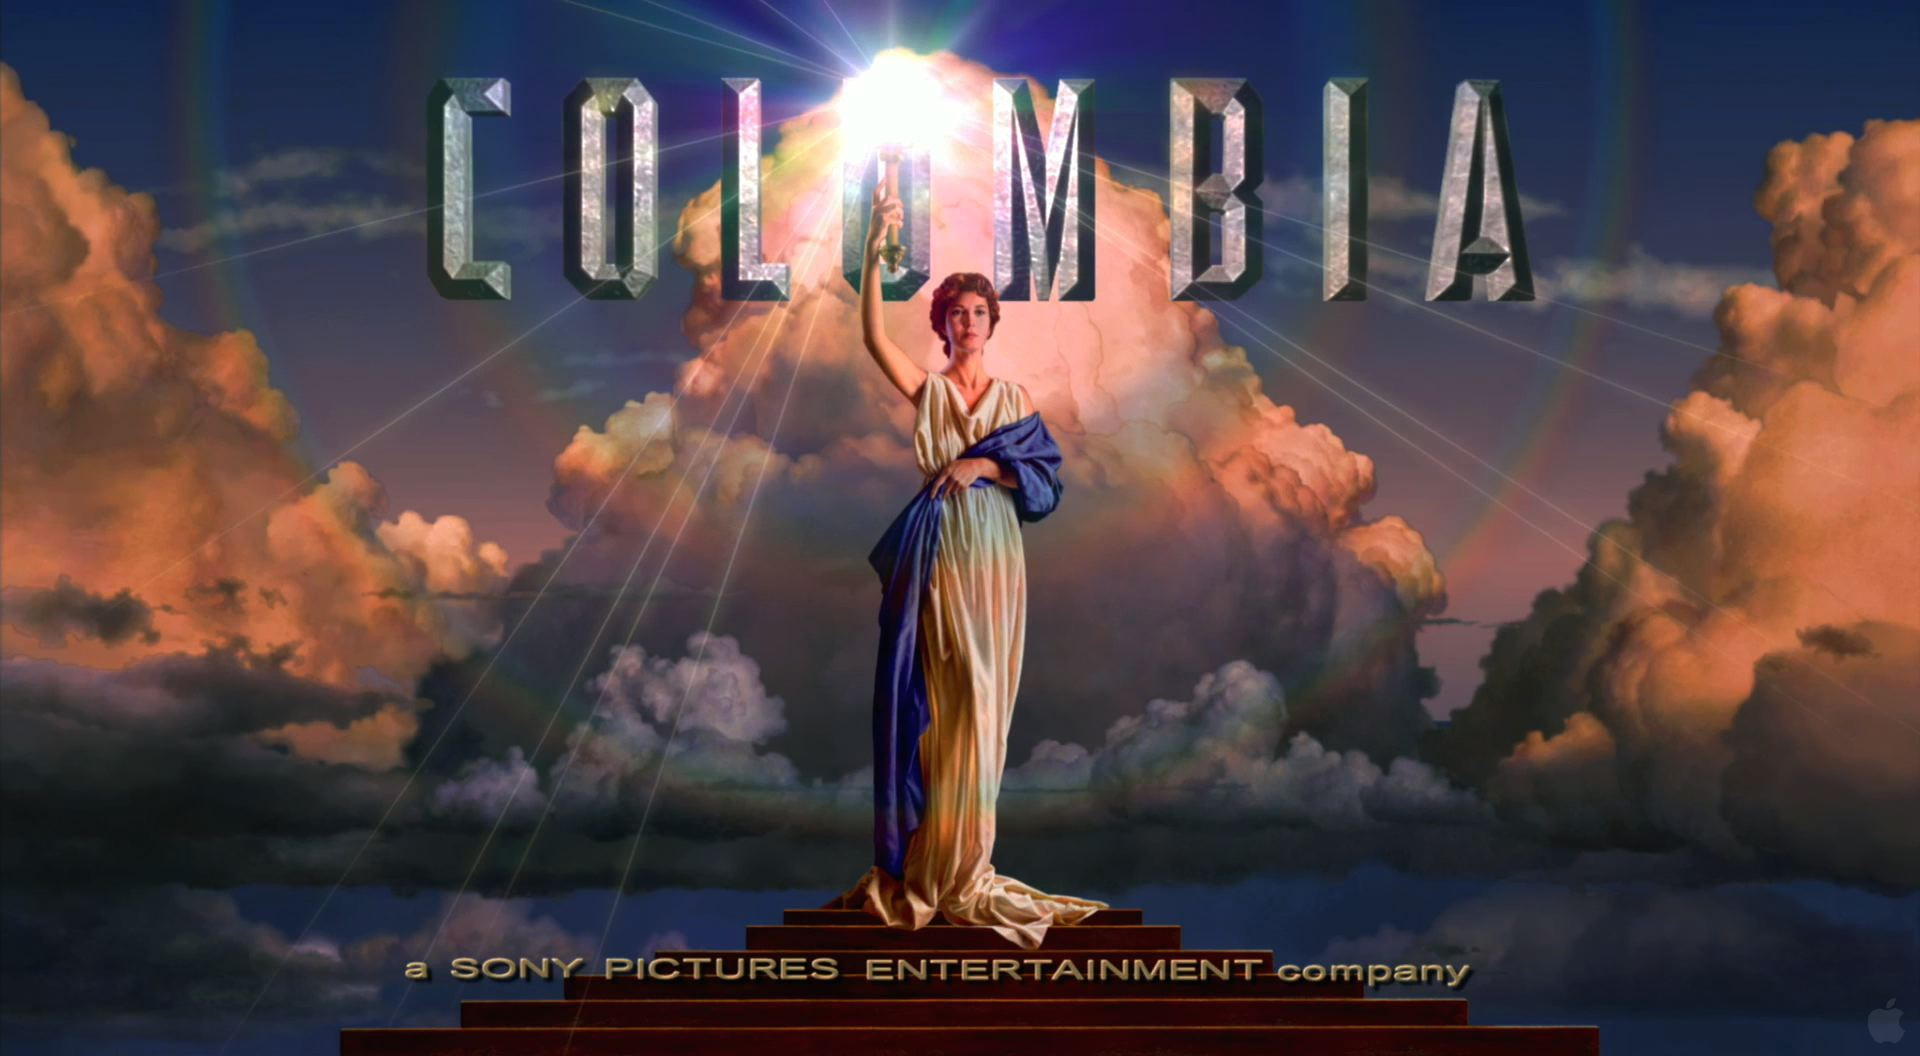 Columbia Movie Logo